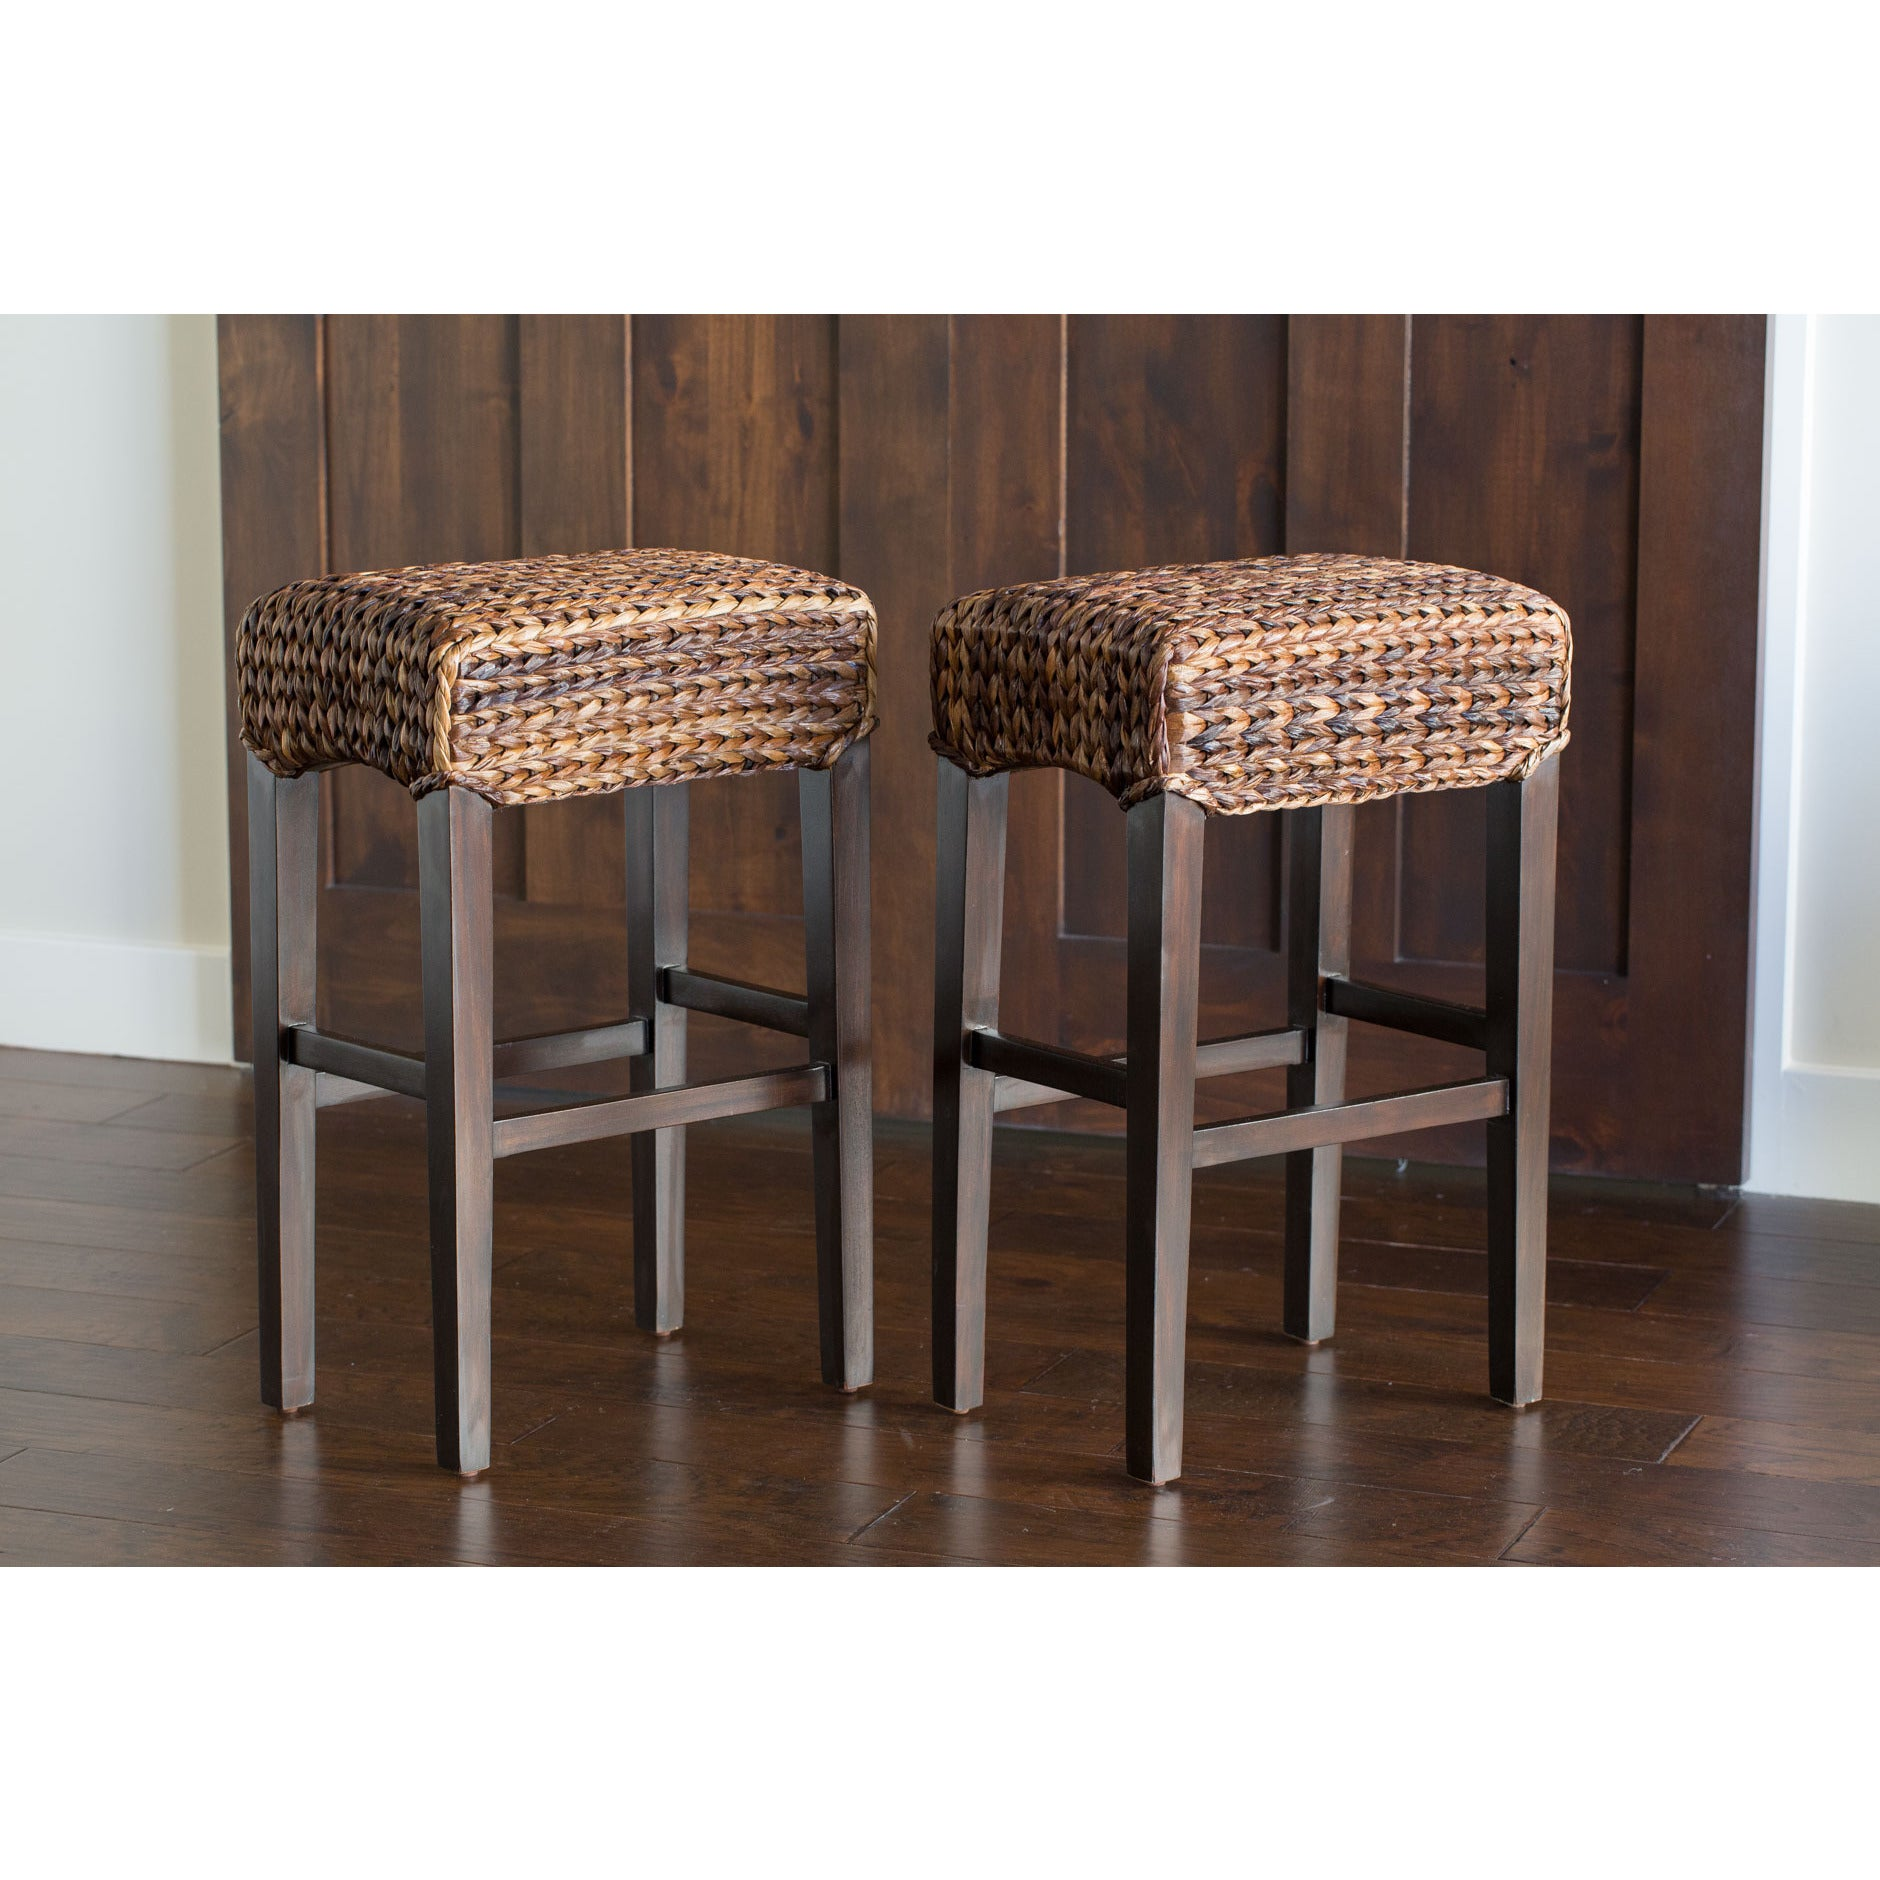 Birdrock Home Seagr Backless Barstools Set Of 2 Free Shipping Today 11735692